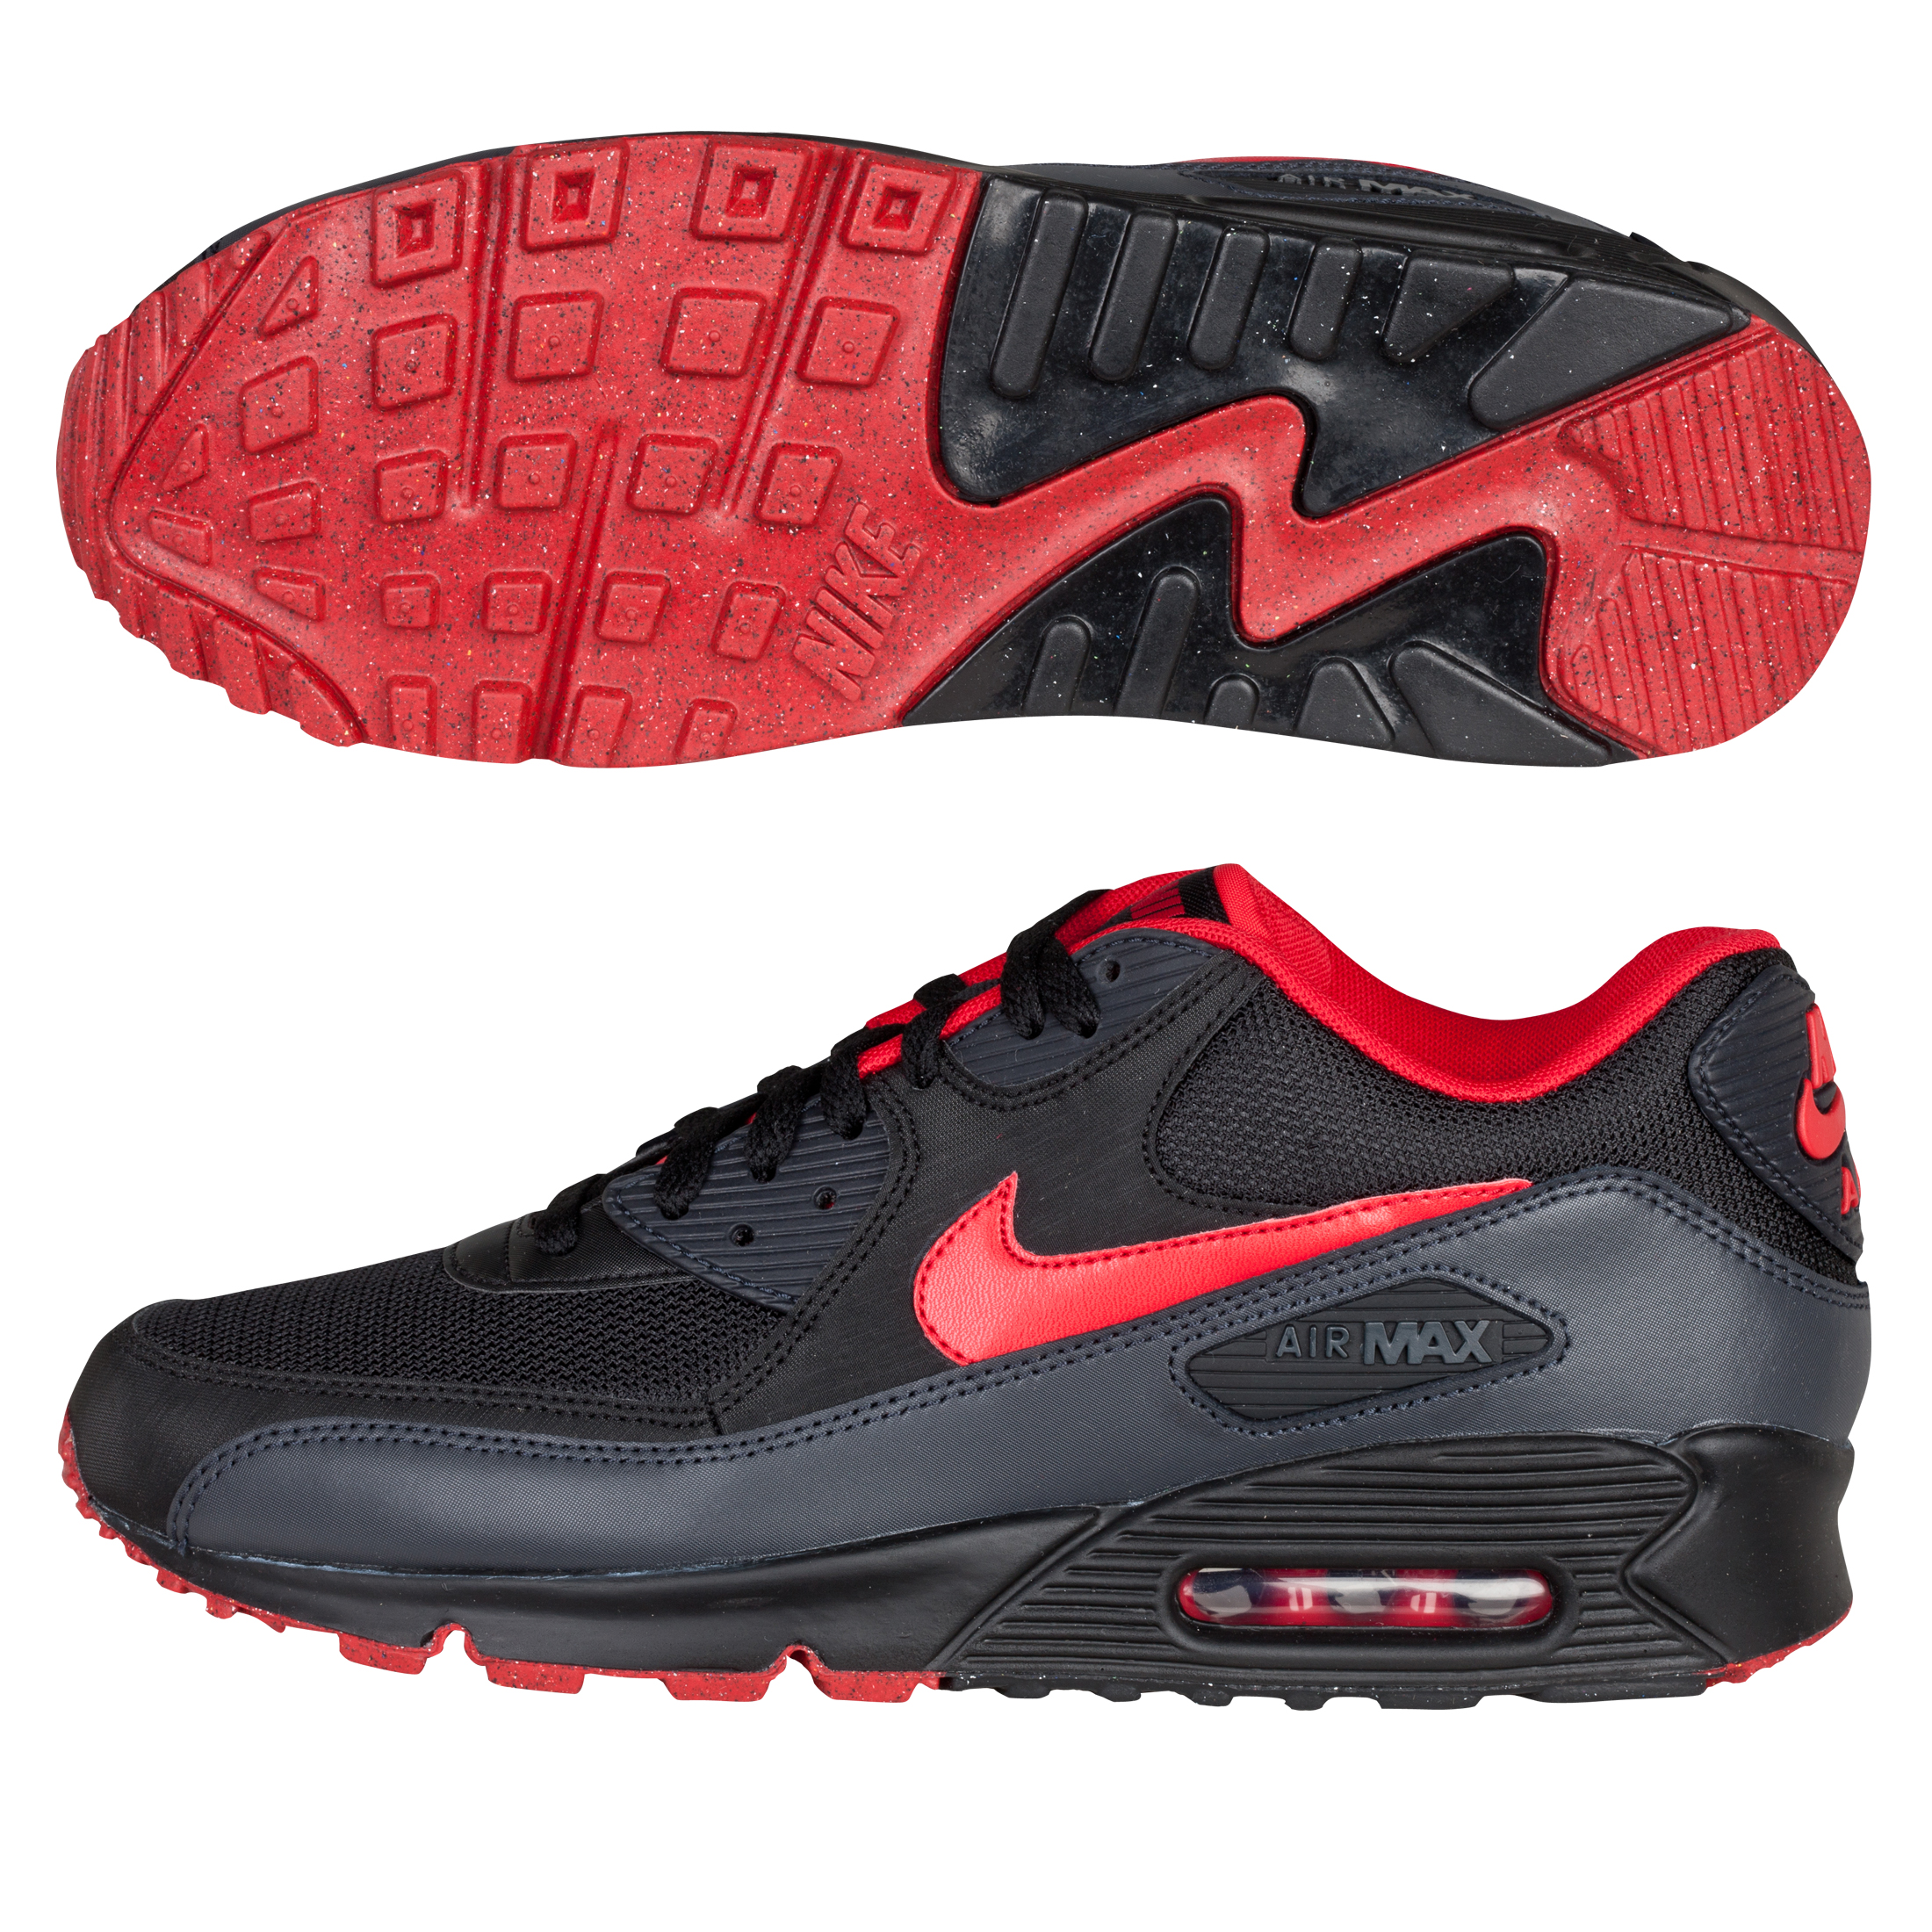 Nike Air Max 90 inch08 Trainers - Black/University Red/Anthracite/Natural Grey